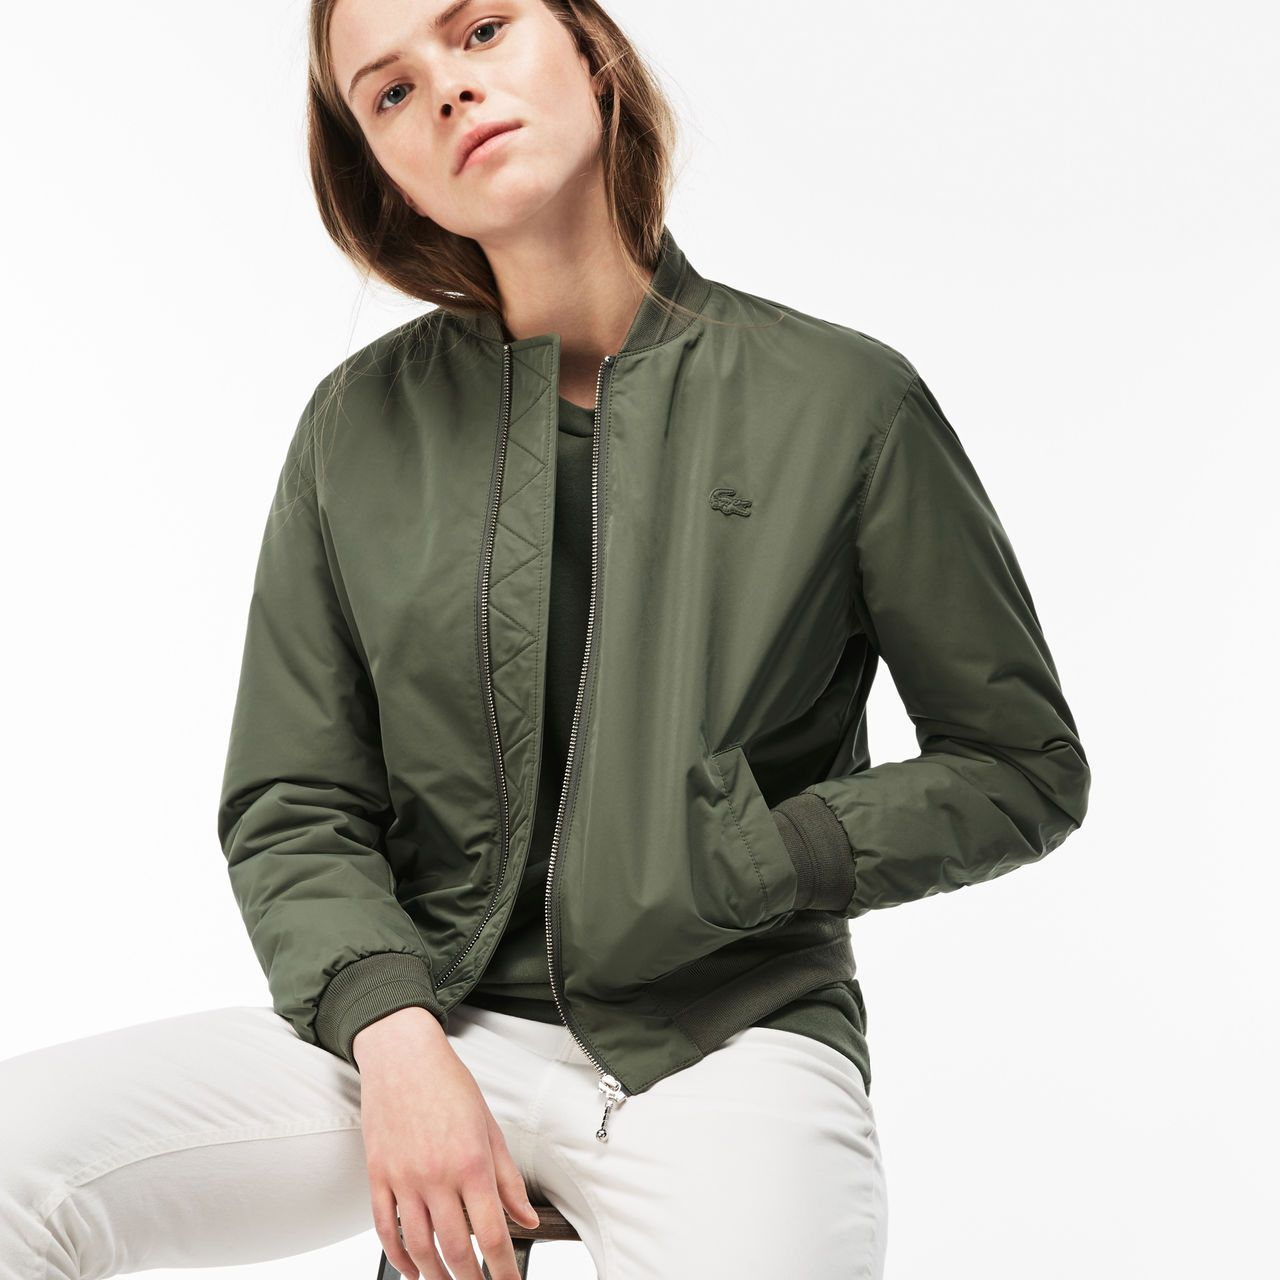 36b9786f5 Women's Contrast Bands Quilted Water-Resistant Taffeta Bomber ...